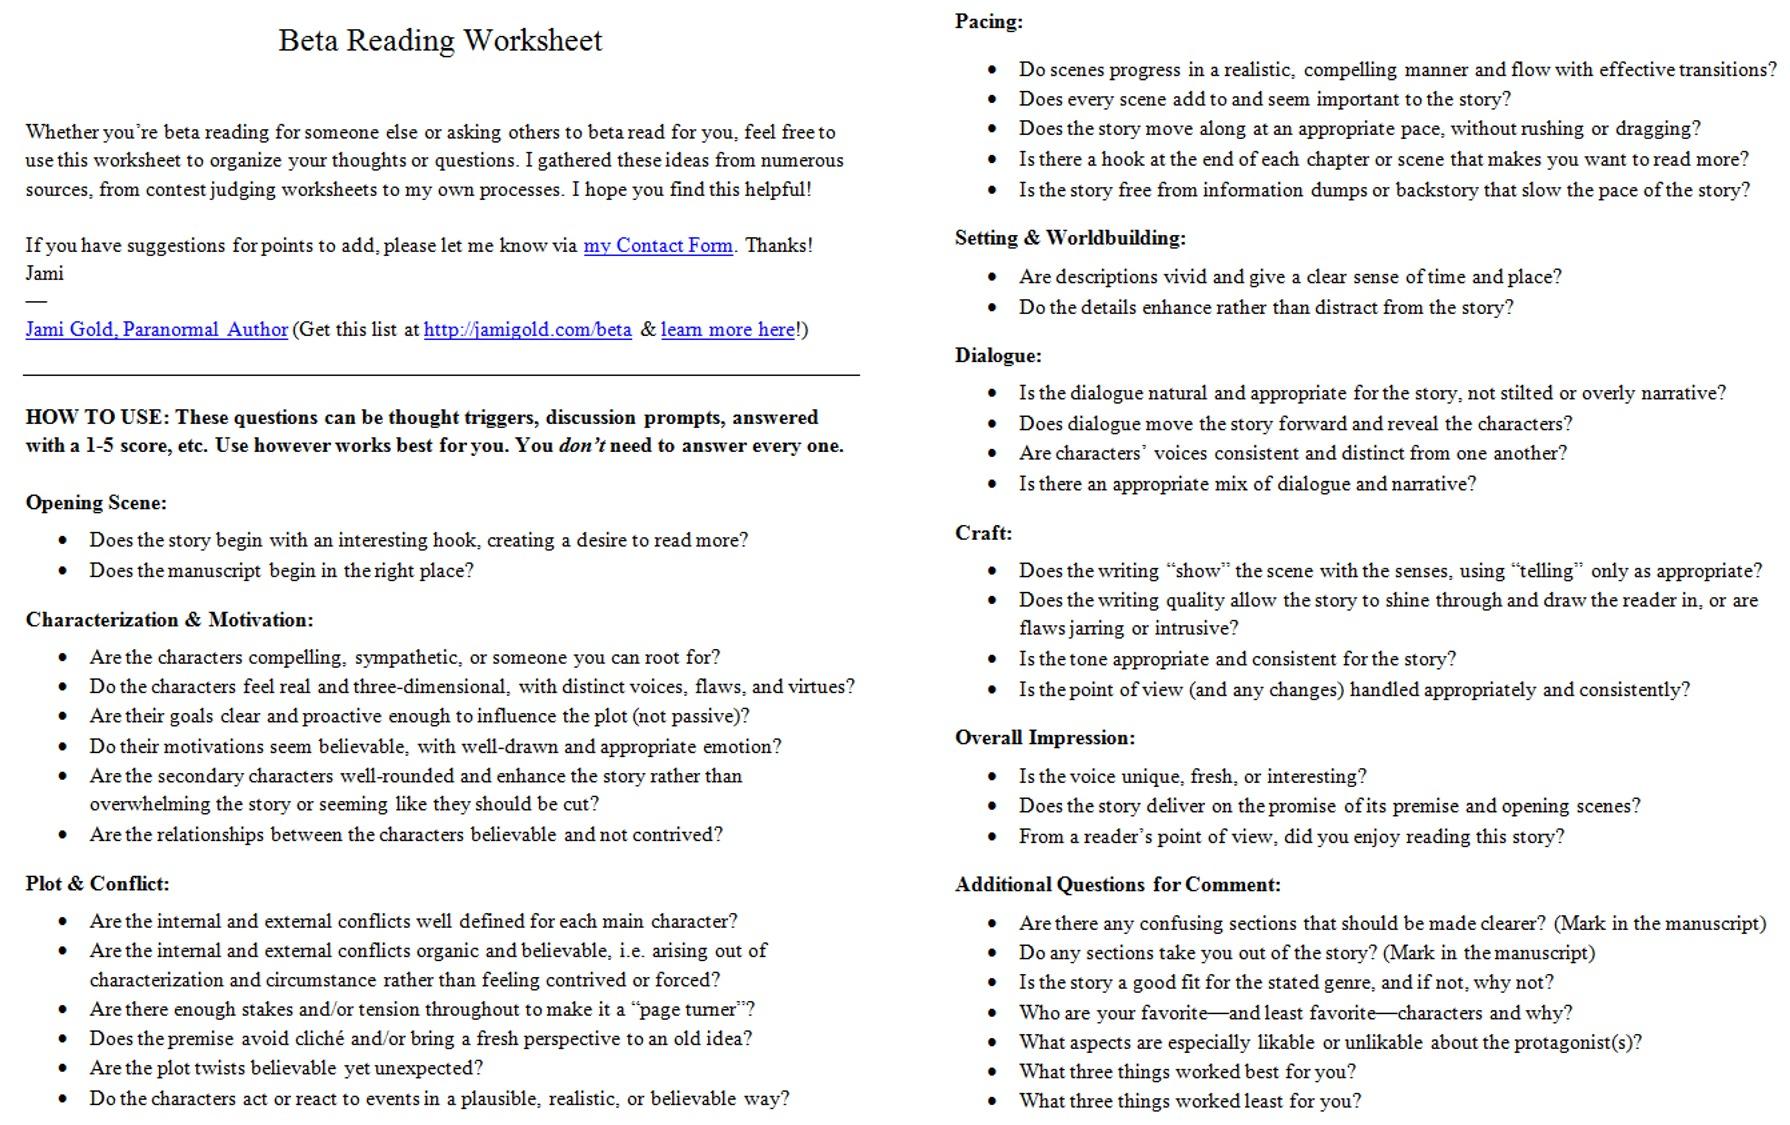 Proatmealus  Gorgeous Worksheets For Writers  Jami Gold Paranormal Author With Fetching Screen Shot Of The Twopage Beta Reading Worksheet With Alluring Phonic Worksheets For Kindergarten Also Direction Worksheets In Addition Vocabulary Words Worksheets And Property Worksheet As Well As Family Budget Worksheet Printable Additionally Fill In The Blank Math Worksheets From Jamigoldcom With Proatmealus  Fetching Worksheets For Writers  Jami Gold Paranormal Author With Alluring Screen Shot Of The Twopage Beta Reading Worksheet And Gorgeous Phonic Worksheets For Kindergarten Also Direction Worksheets In Addition Vocabulary Words Worksheets From Jamigoldcom